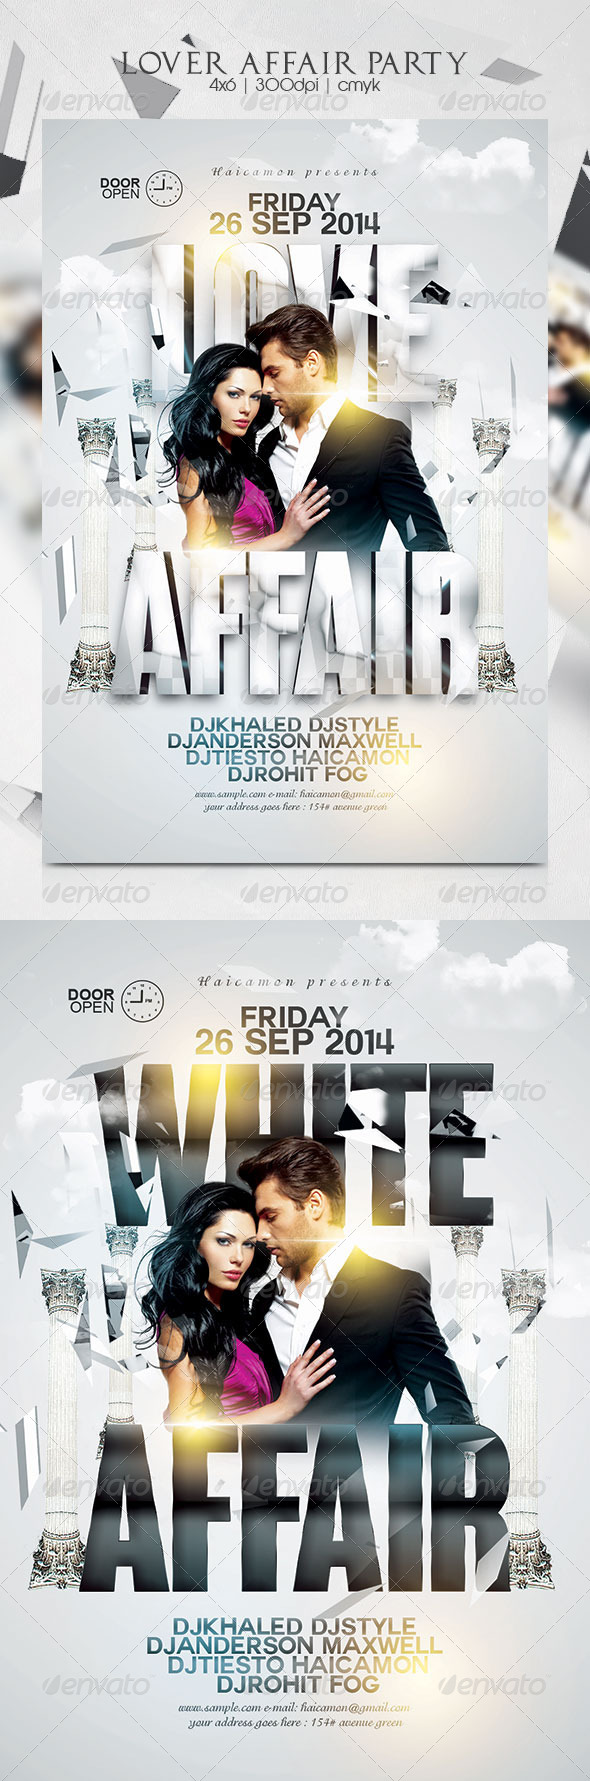 GraphicRiver Lover Affair Party Flyer 8729165